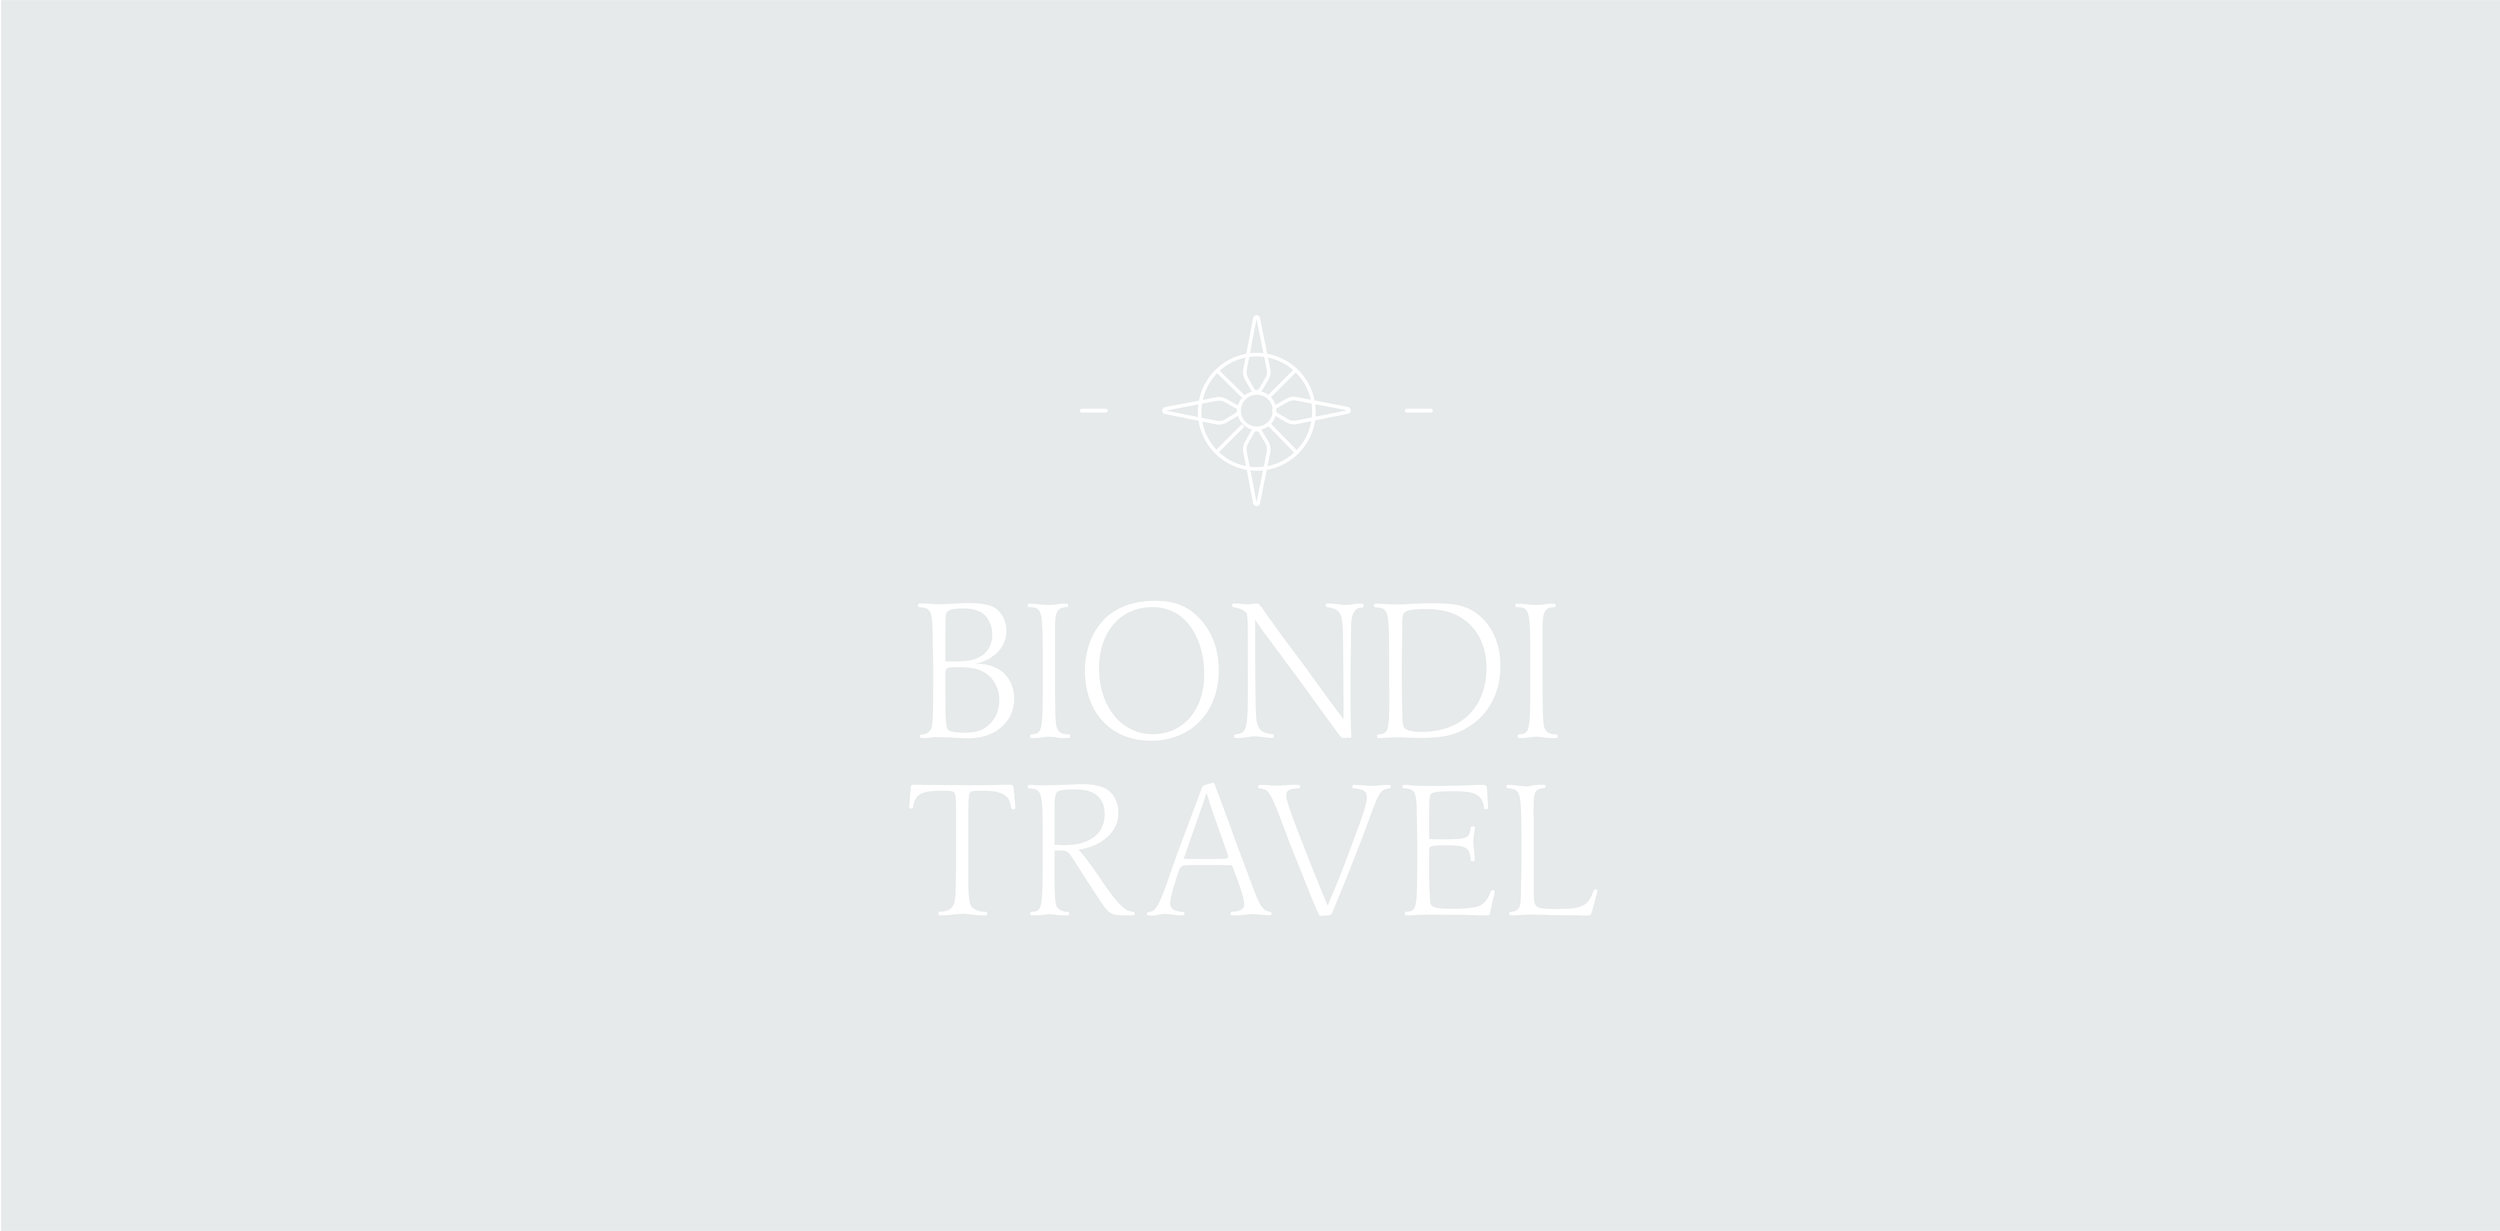 Small Travel Business Full Branding Package & Logo